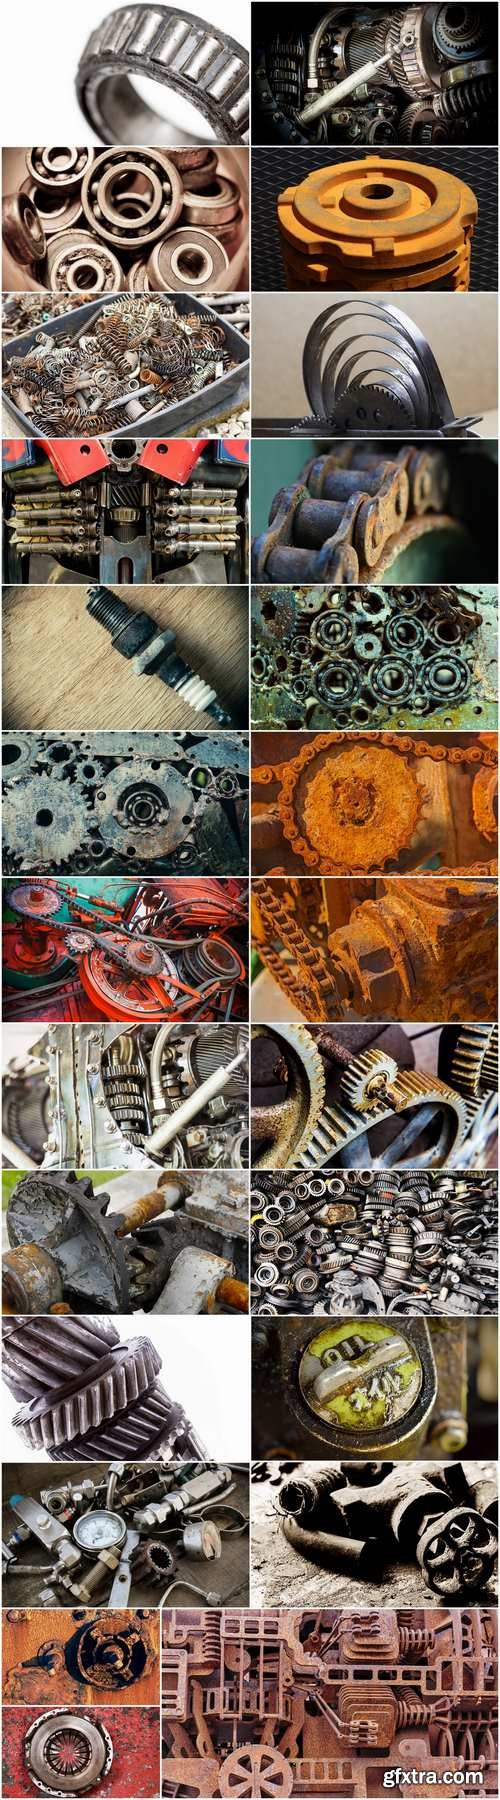 Vintage gear with rust 25 HQ Jpeg